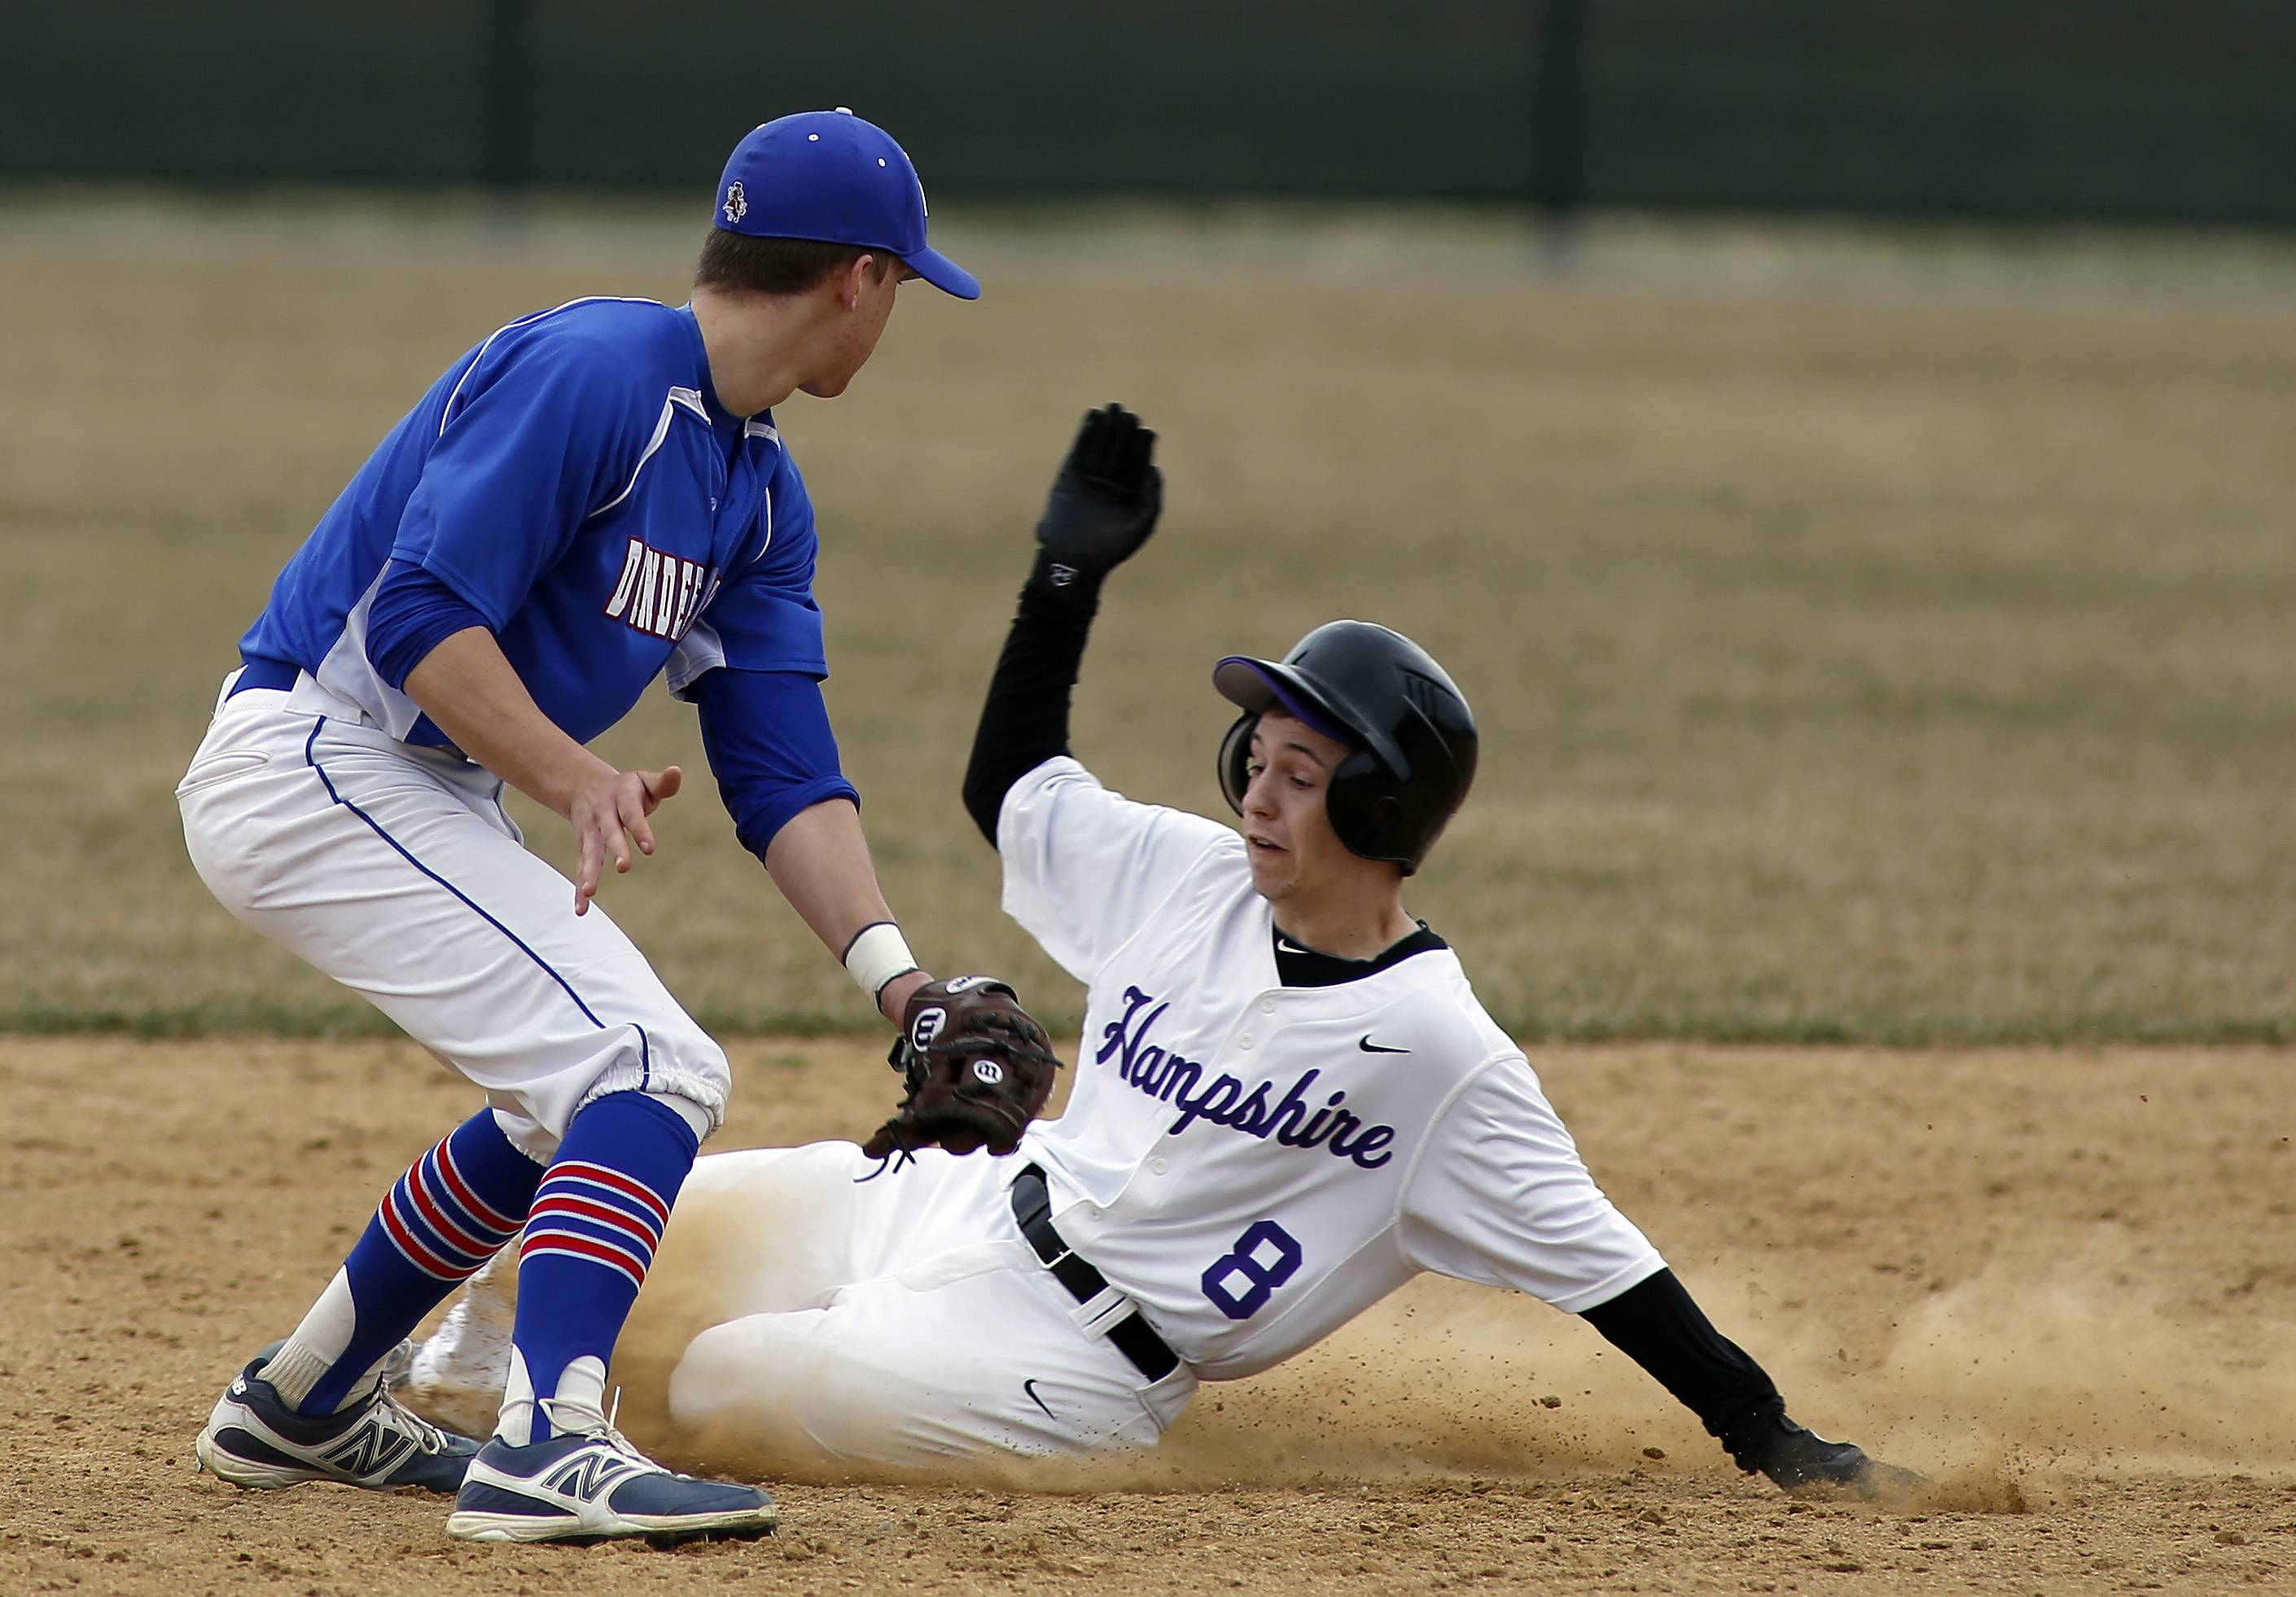 Dundee-Crown's Tyler Lewan tags out Hampshire's Michael Merchut at Hampshire on Saturday.